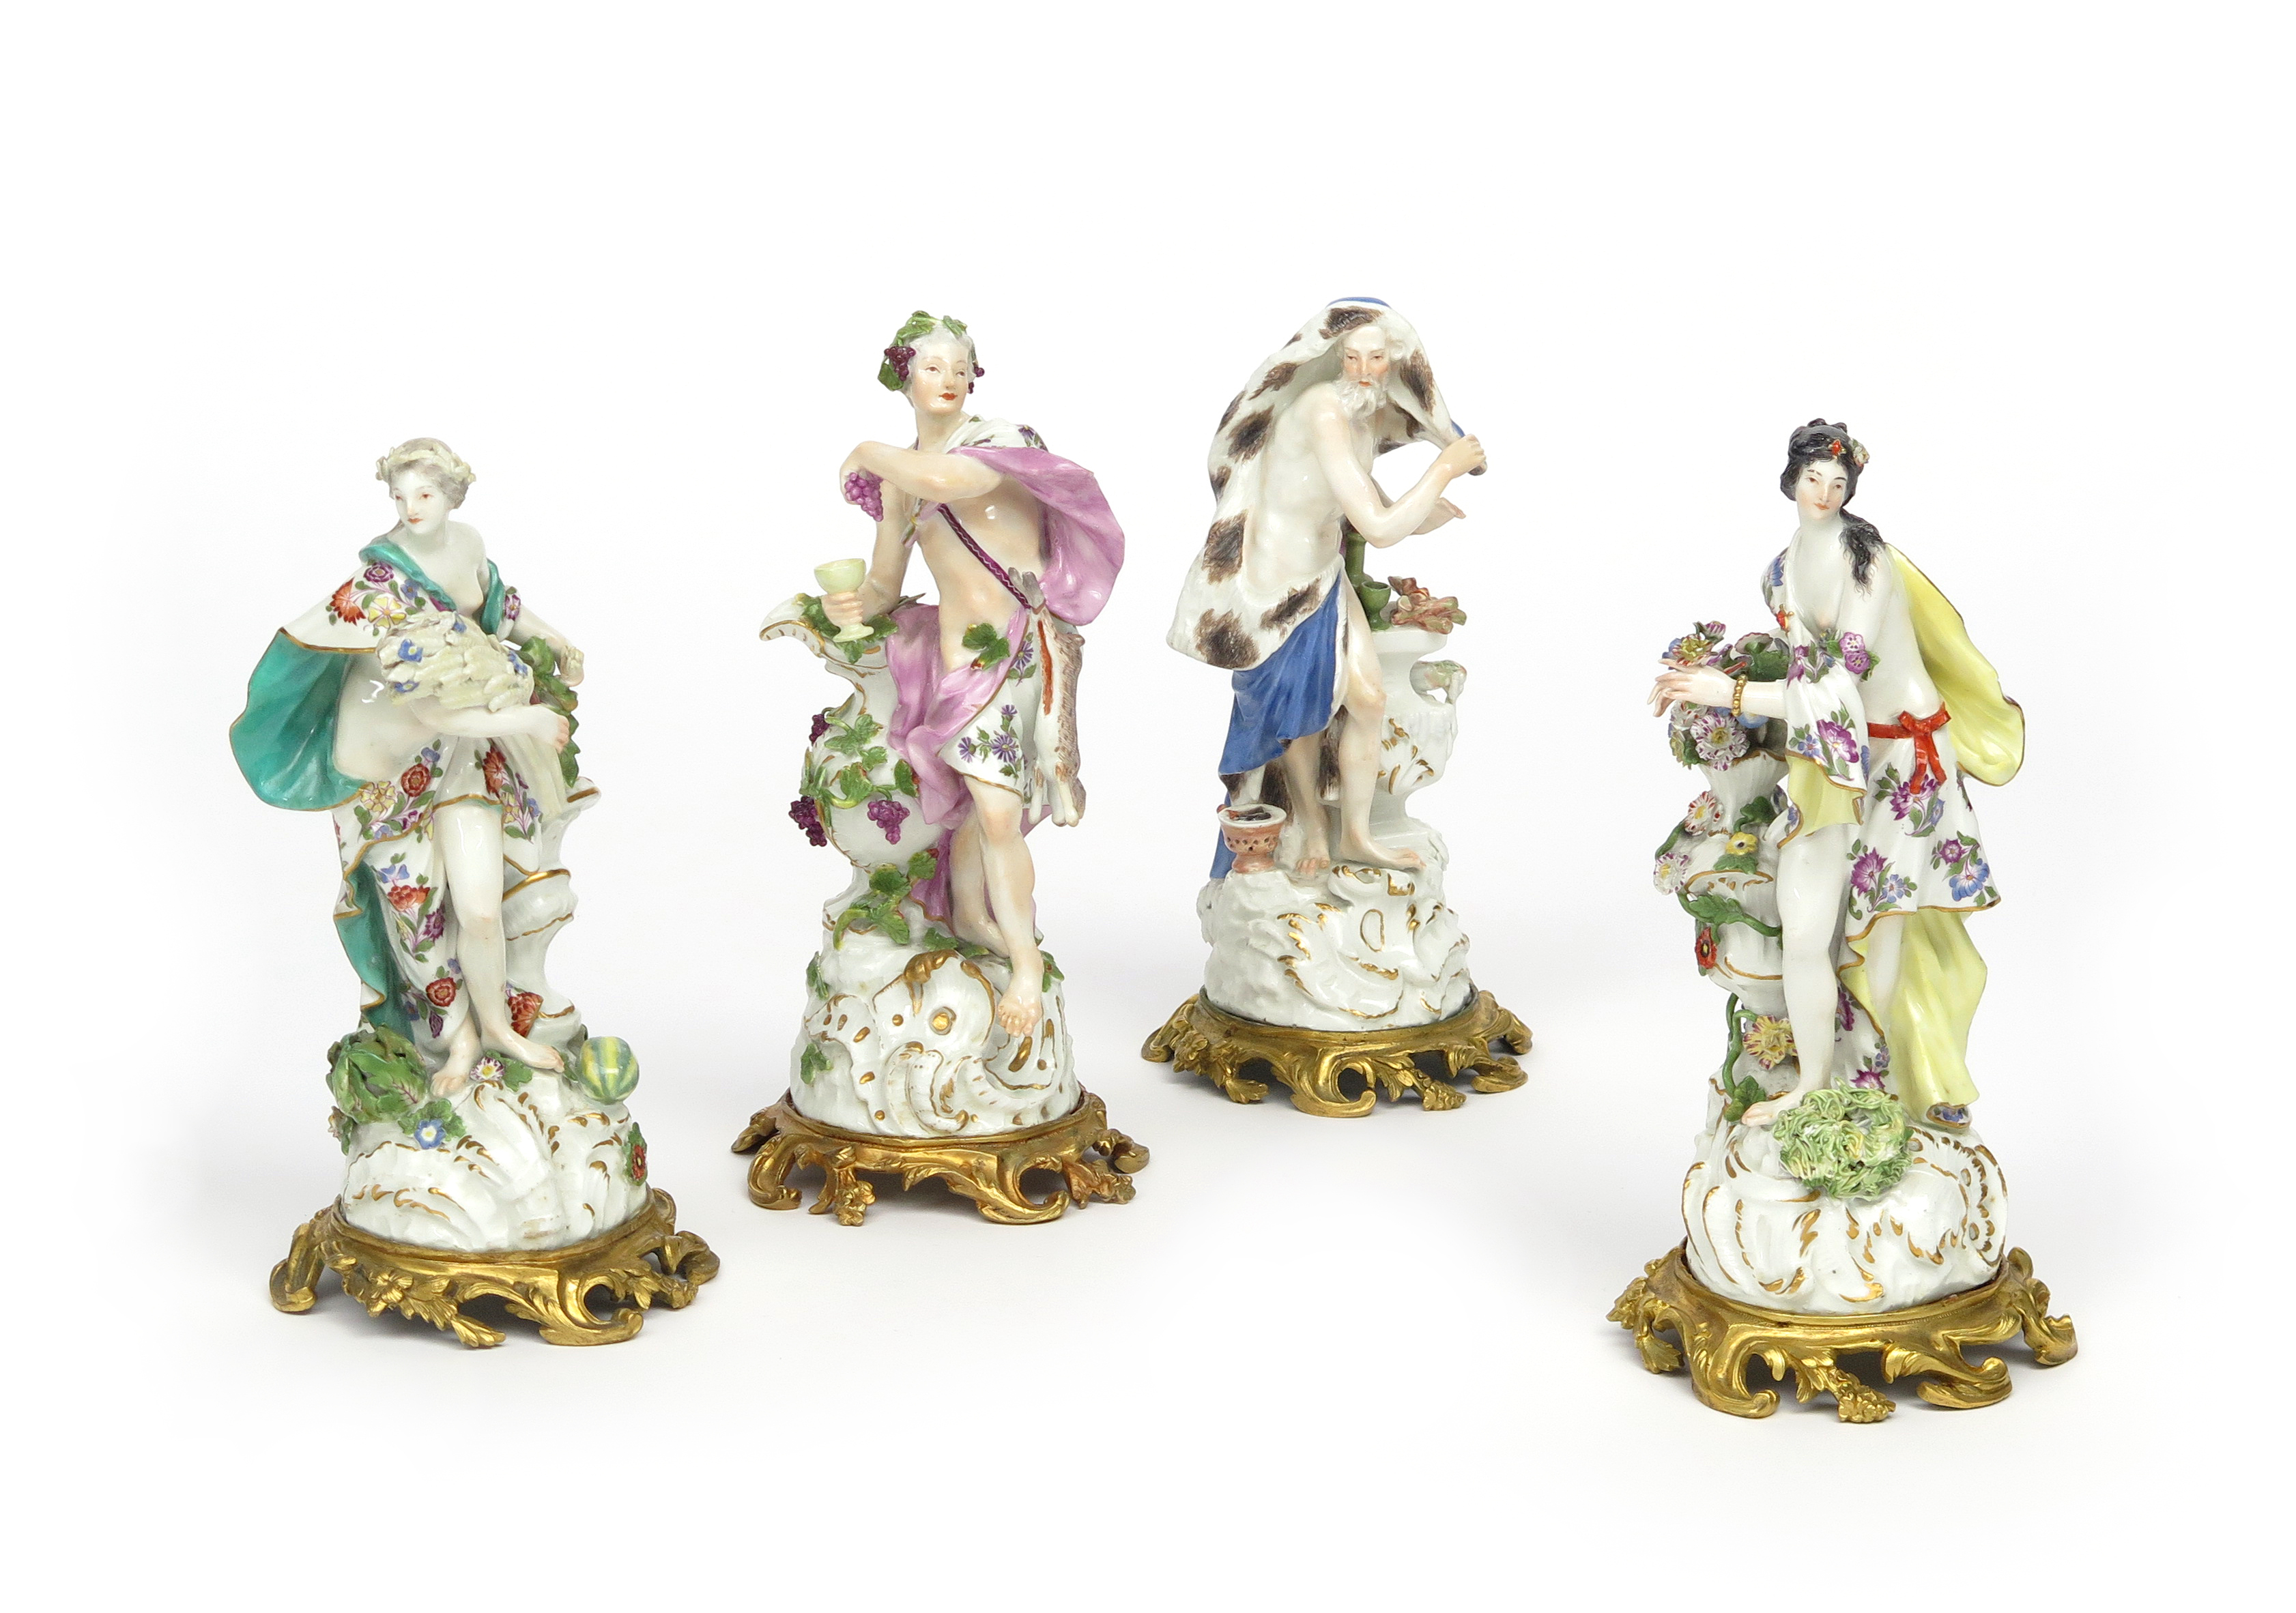 Lot 174 - A set of ormolu-mounted Meissen figures of the Four Seasons c.1760, each modelled as a Classical